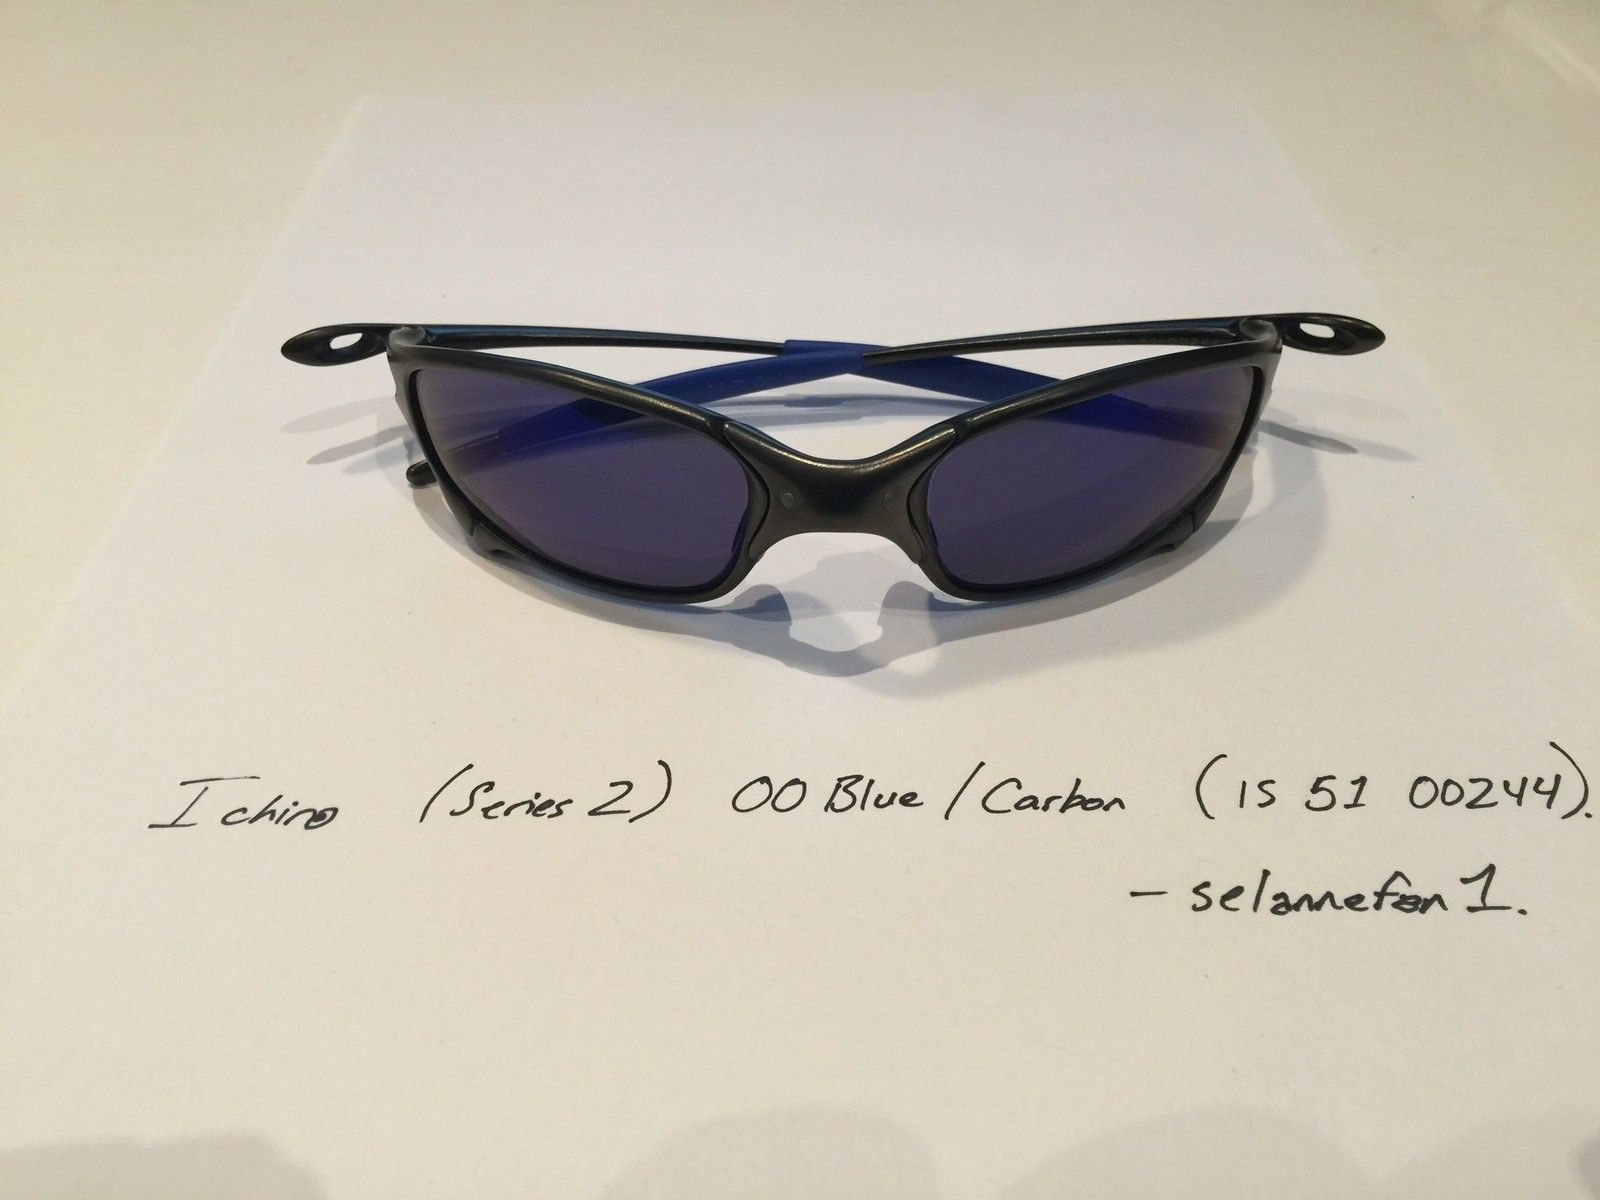 Ichiro OO Blue / Carbon Juliets (with Serial and Box) - IMG_3826.JPG